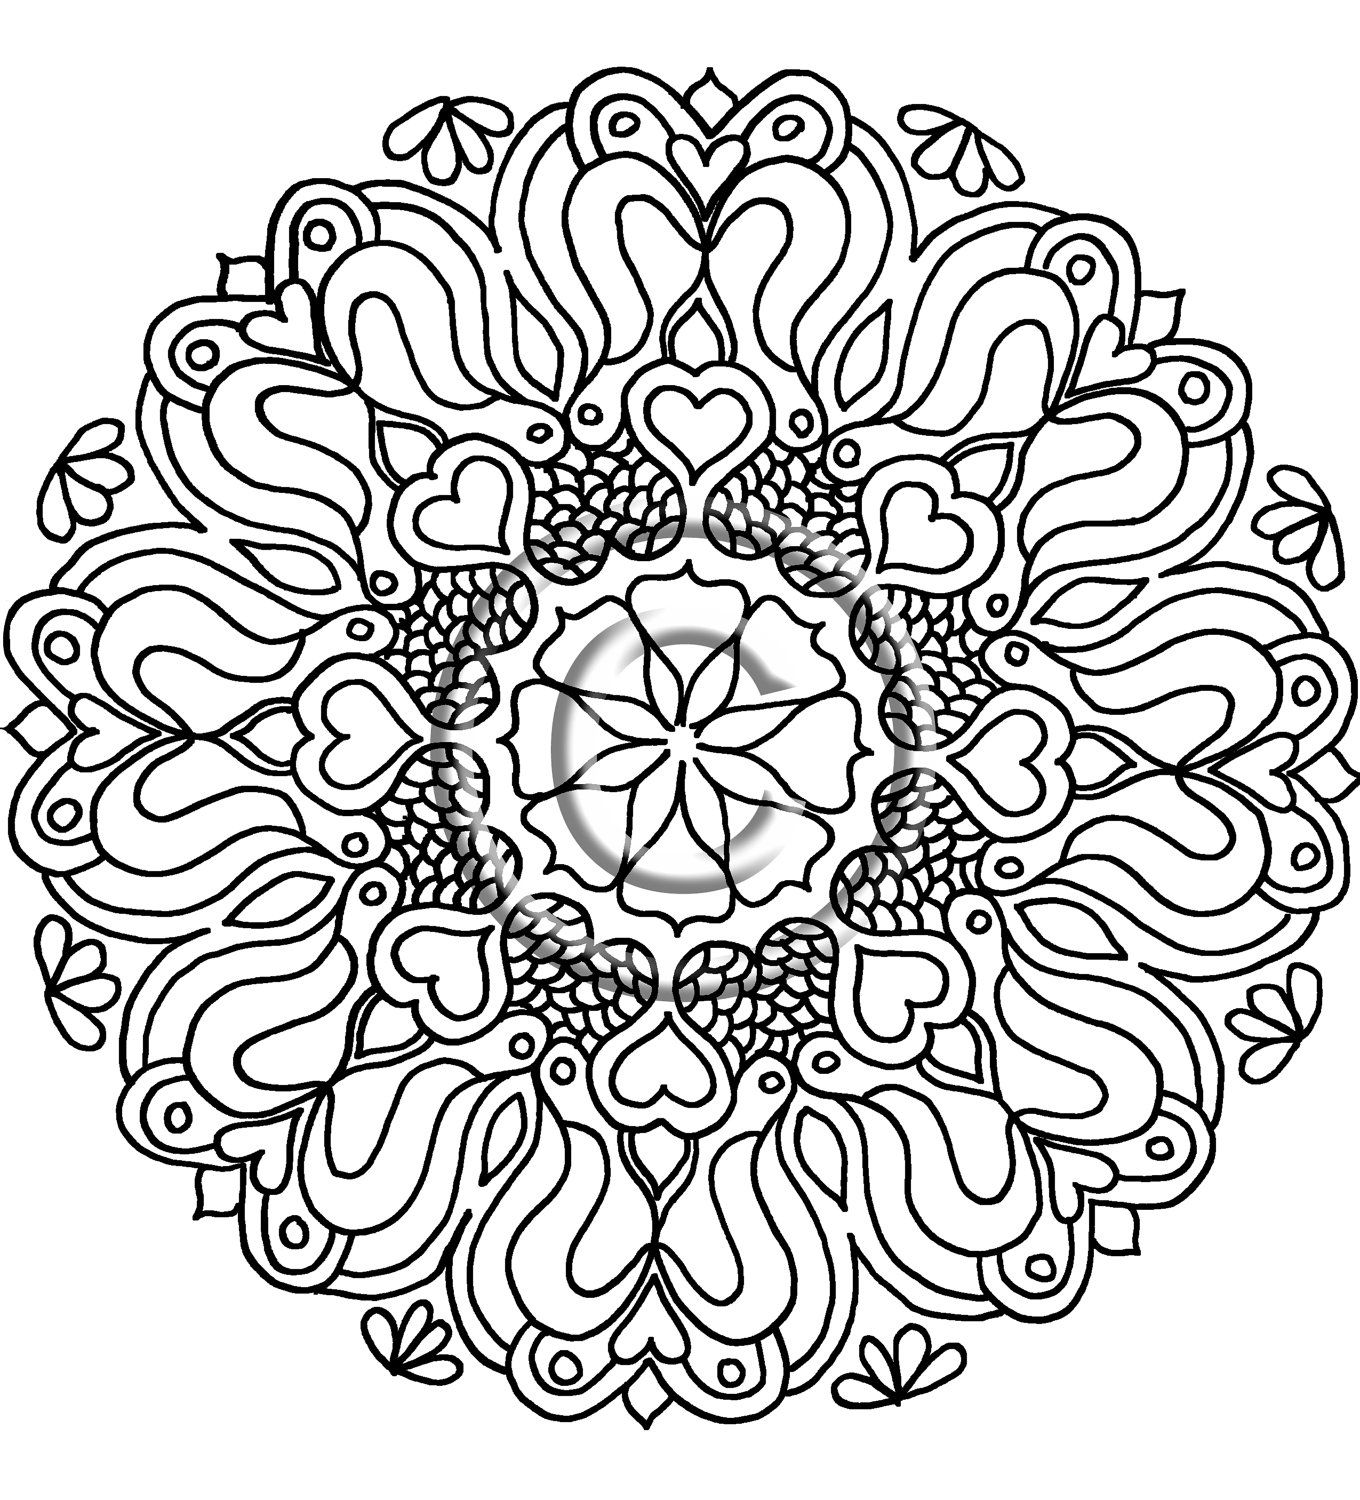 mandala hand coloring pages pin by todos con las manos on ultimate coloring pages coloring mandala pages hand